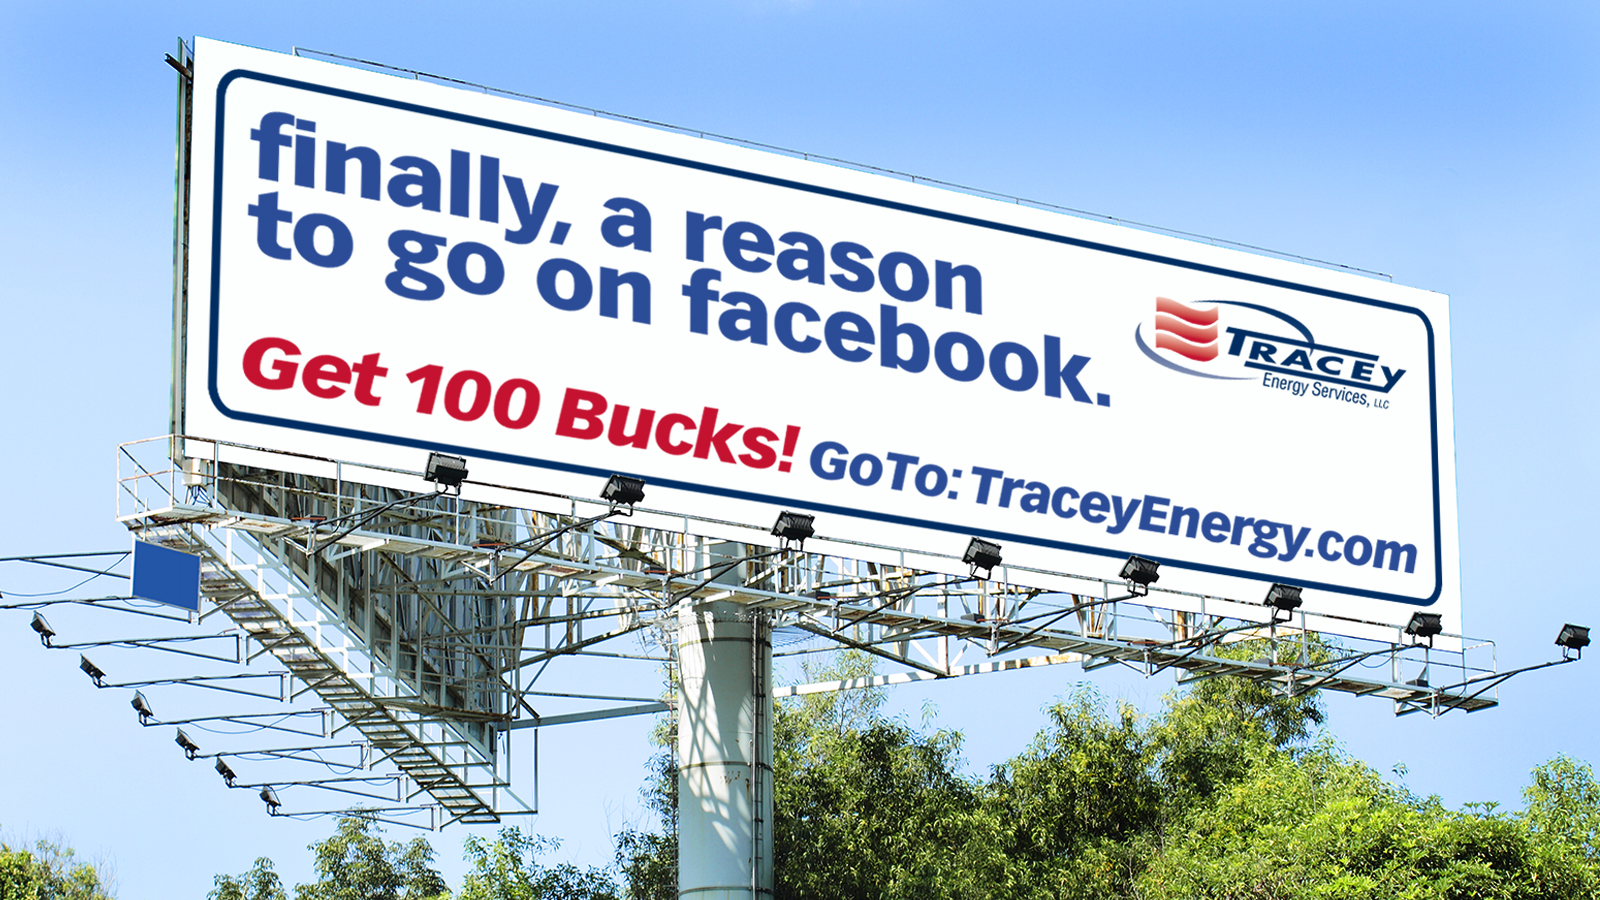 Tracey Billboards Small